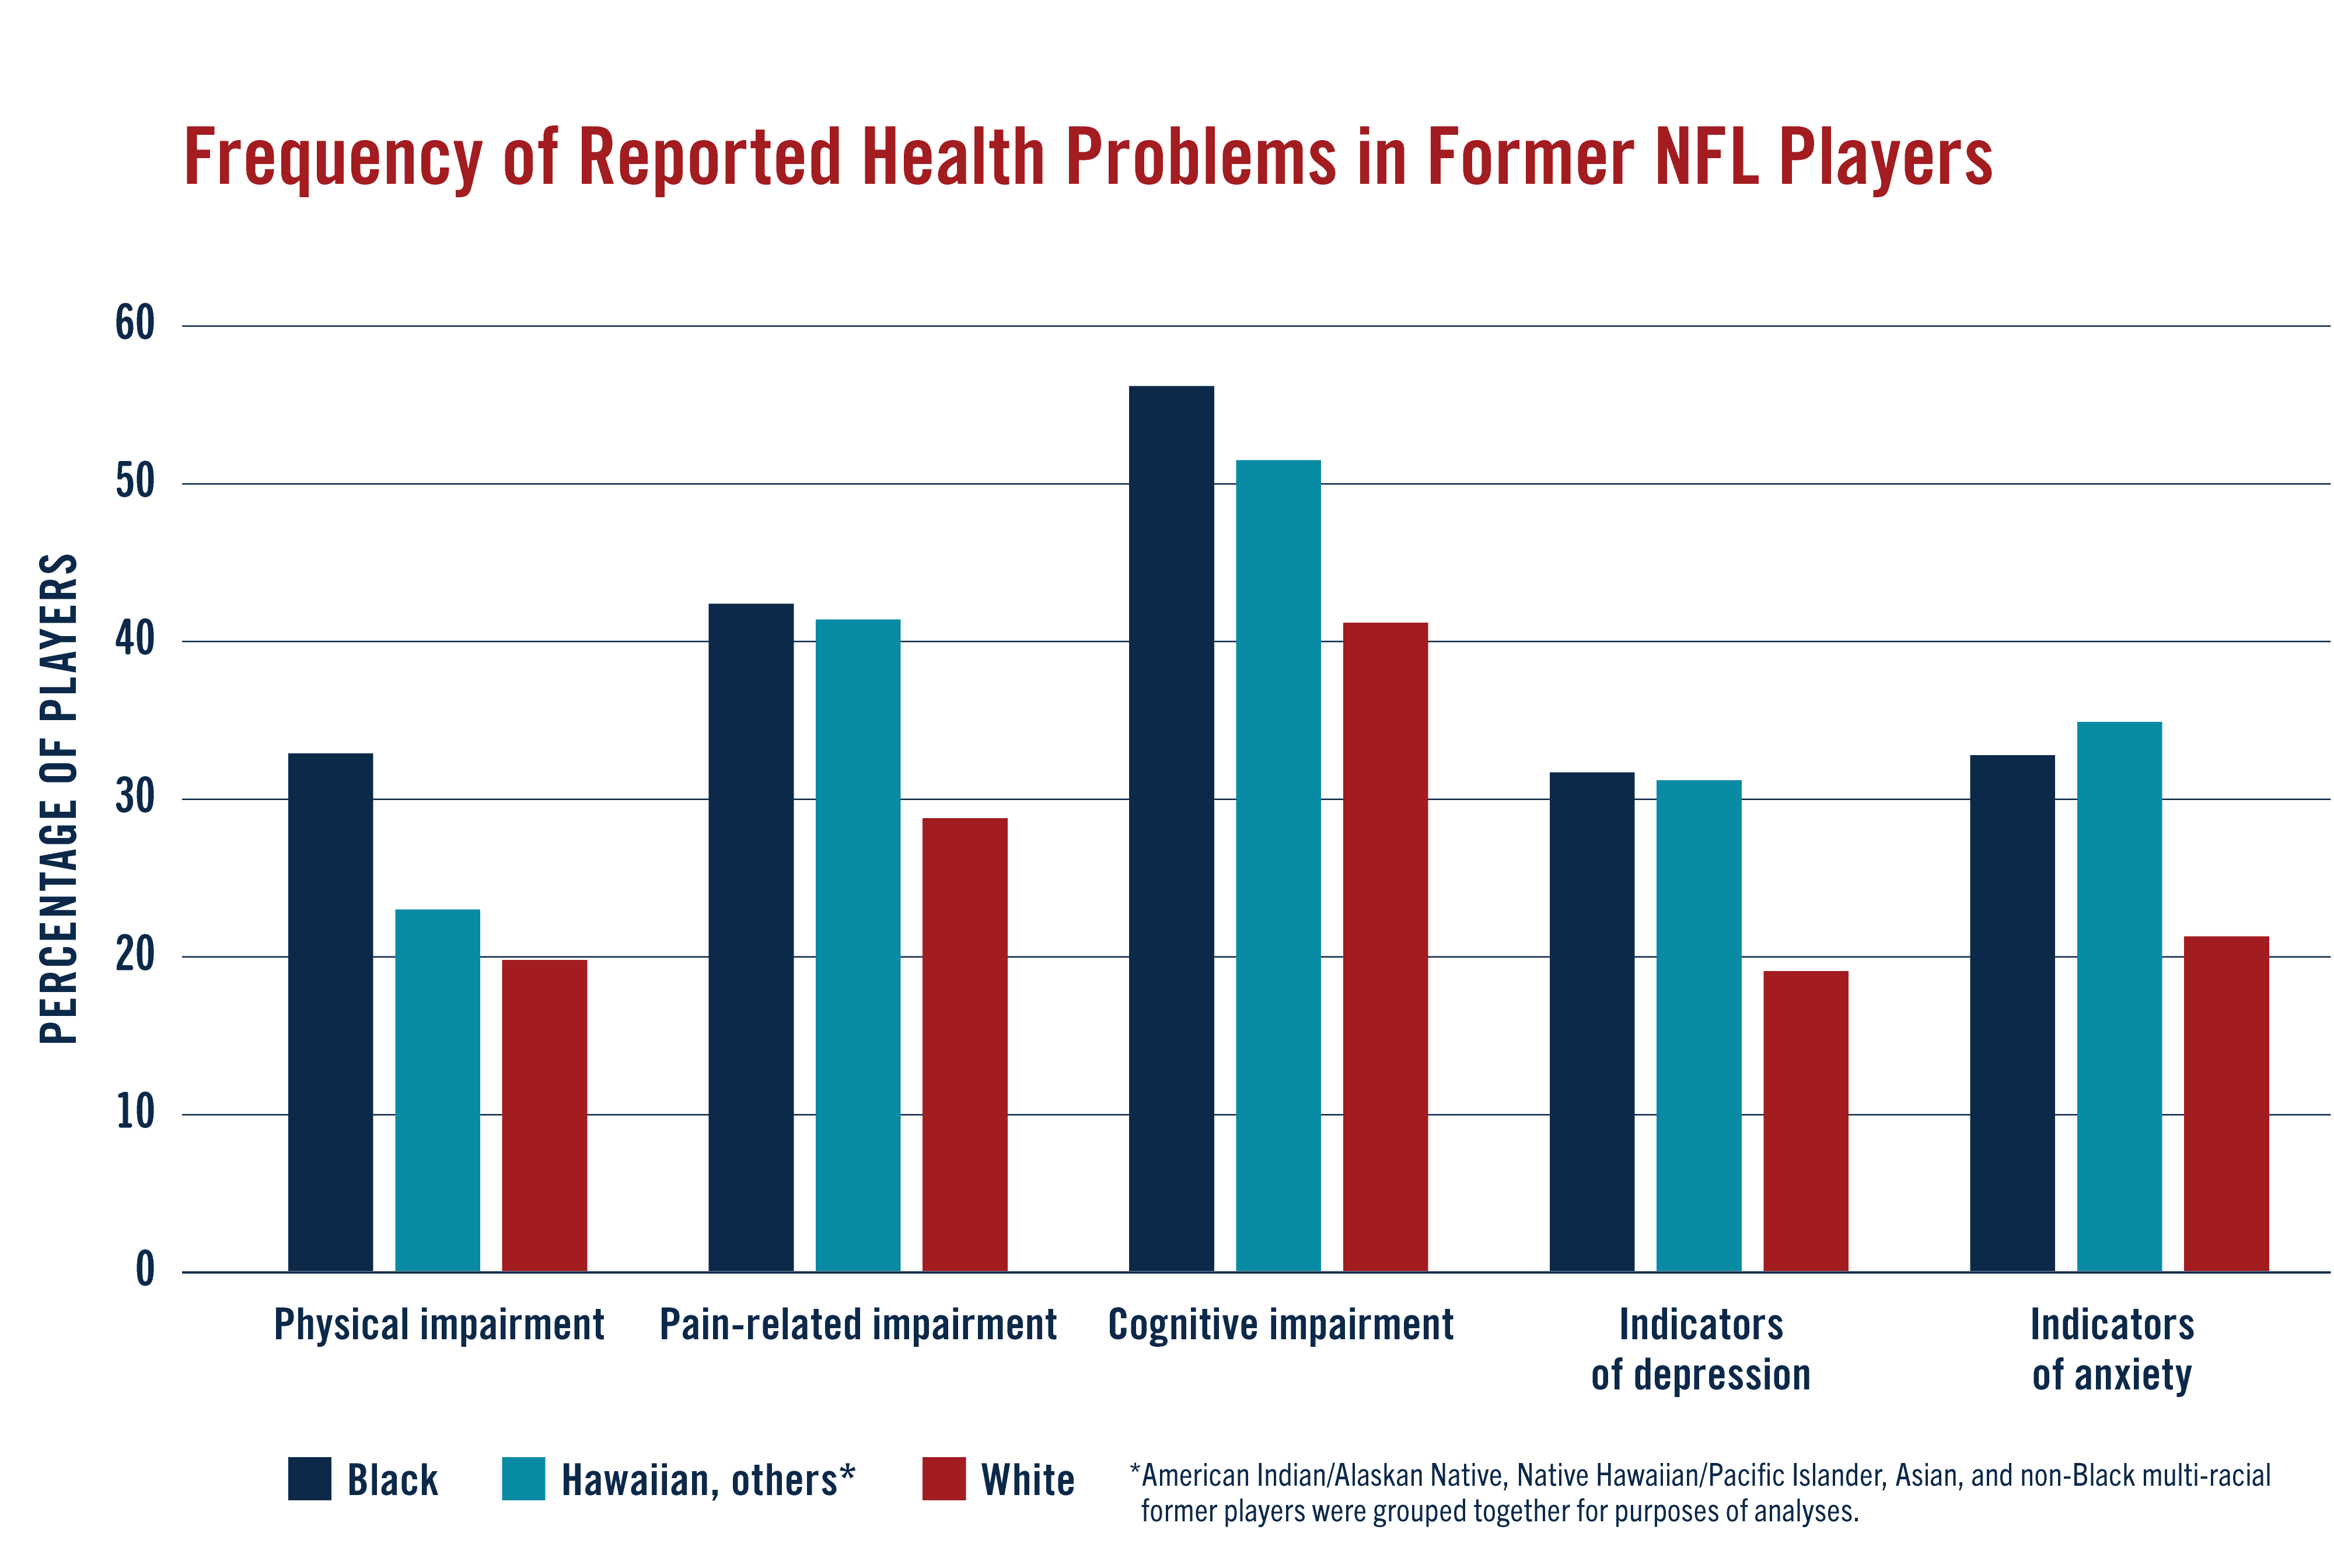 FREQUENCY OF REPORTED HEALTH PROBLEMS IN FORMER NFL PLAYERS graph